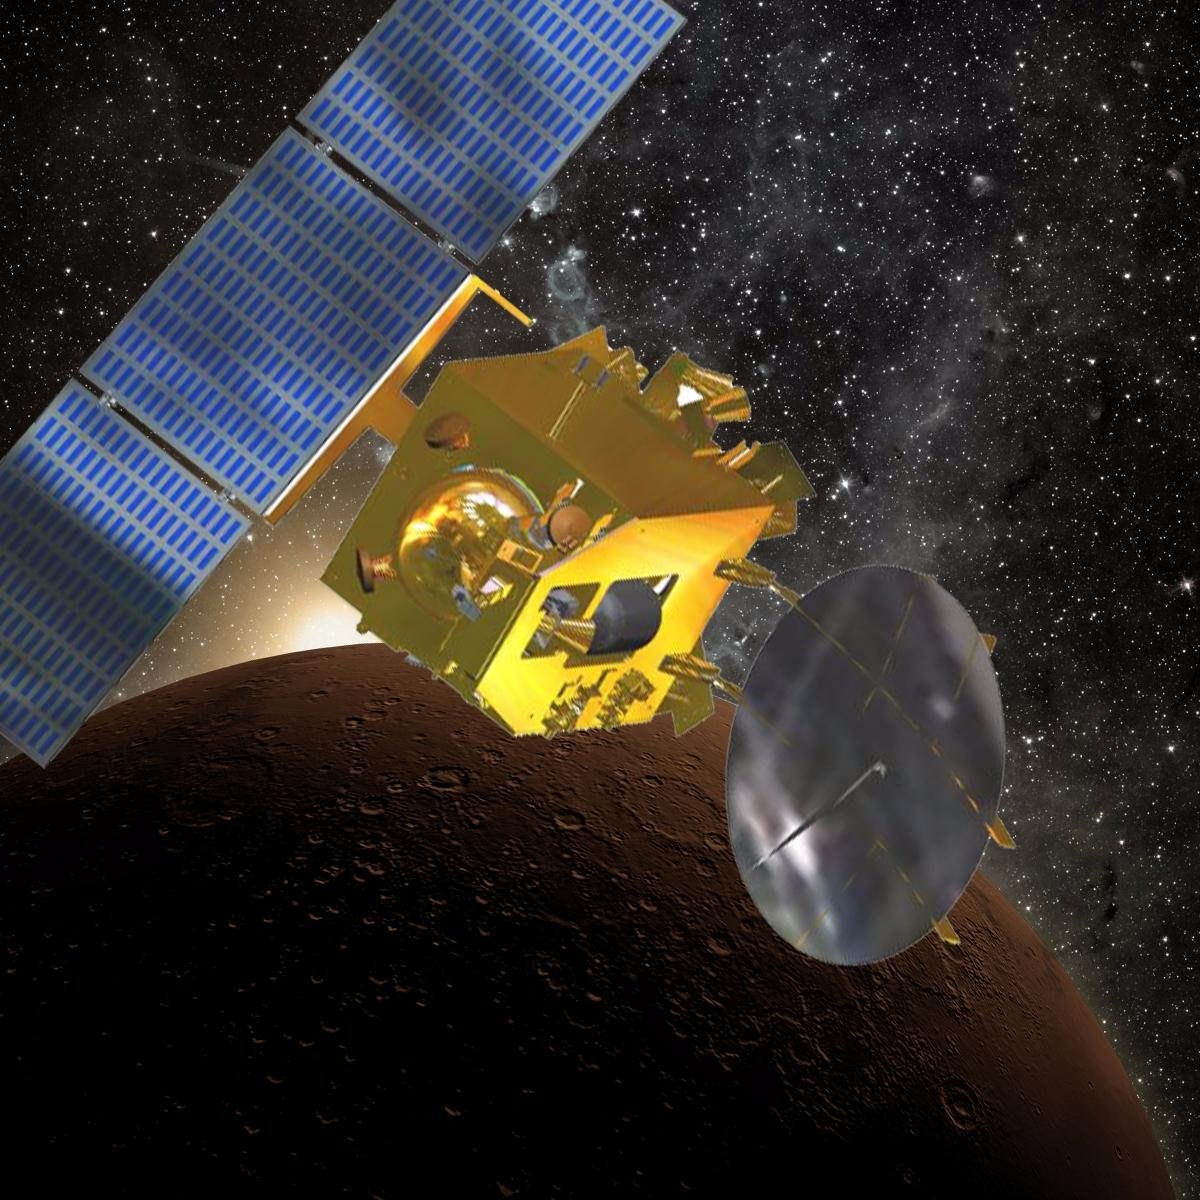 solar power mission to mars - photo #27